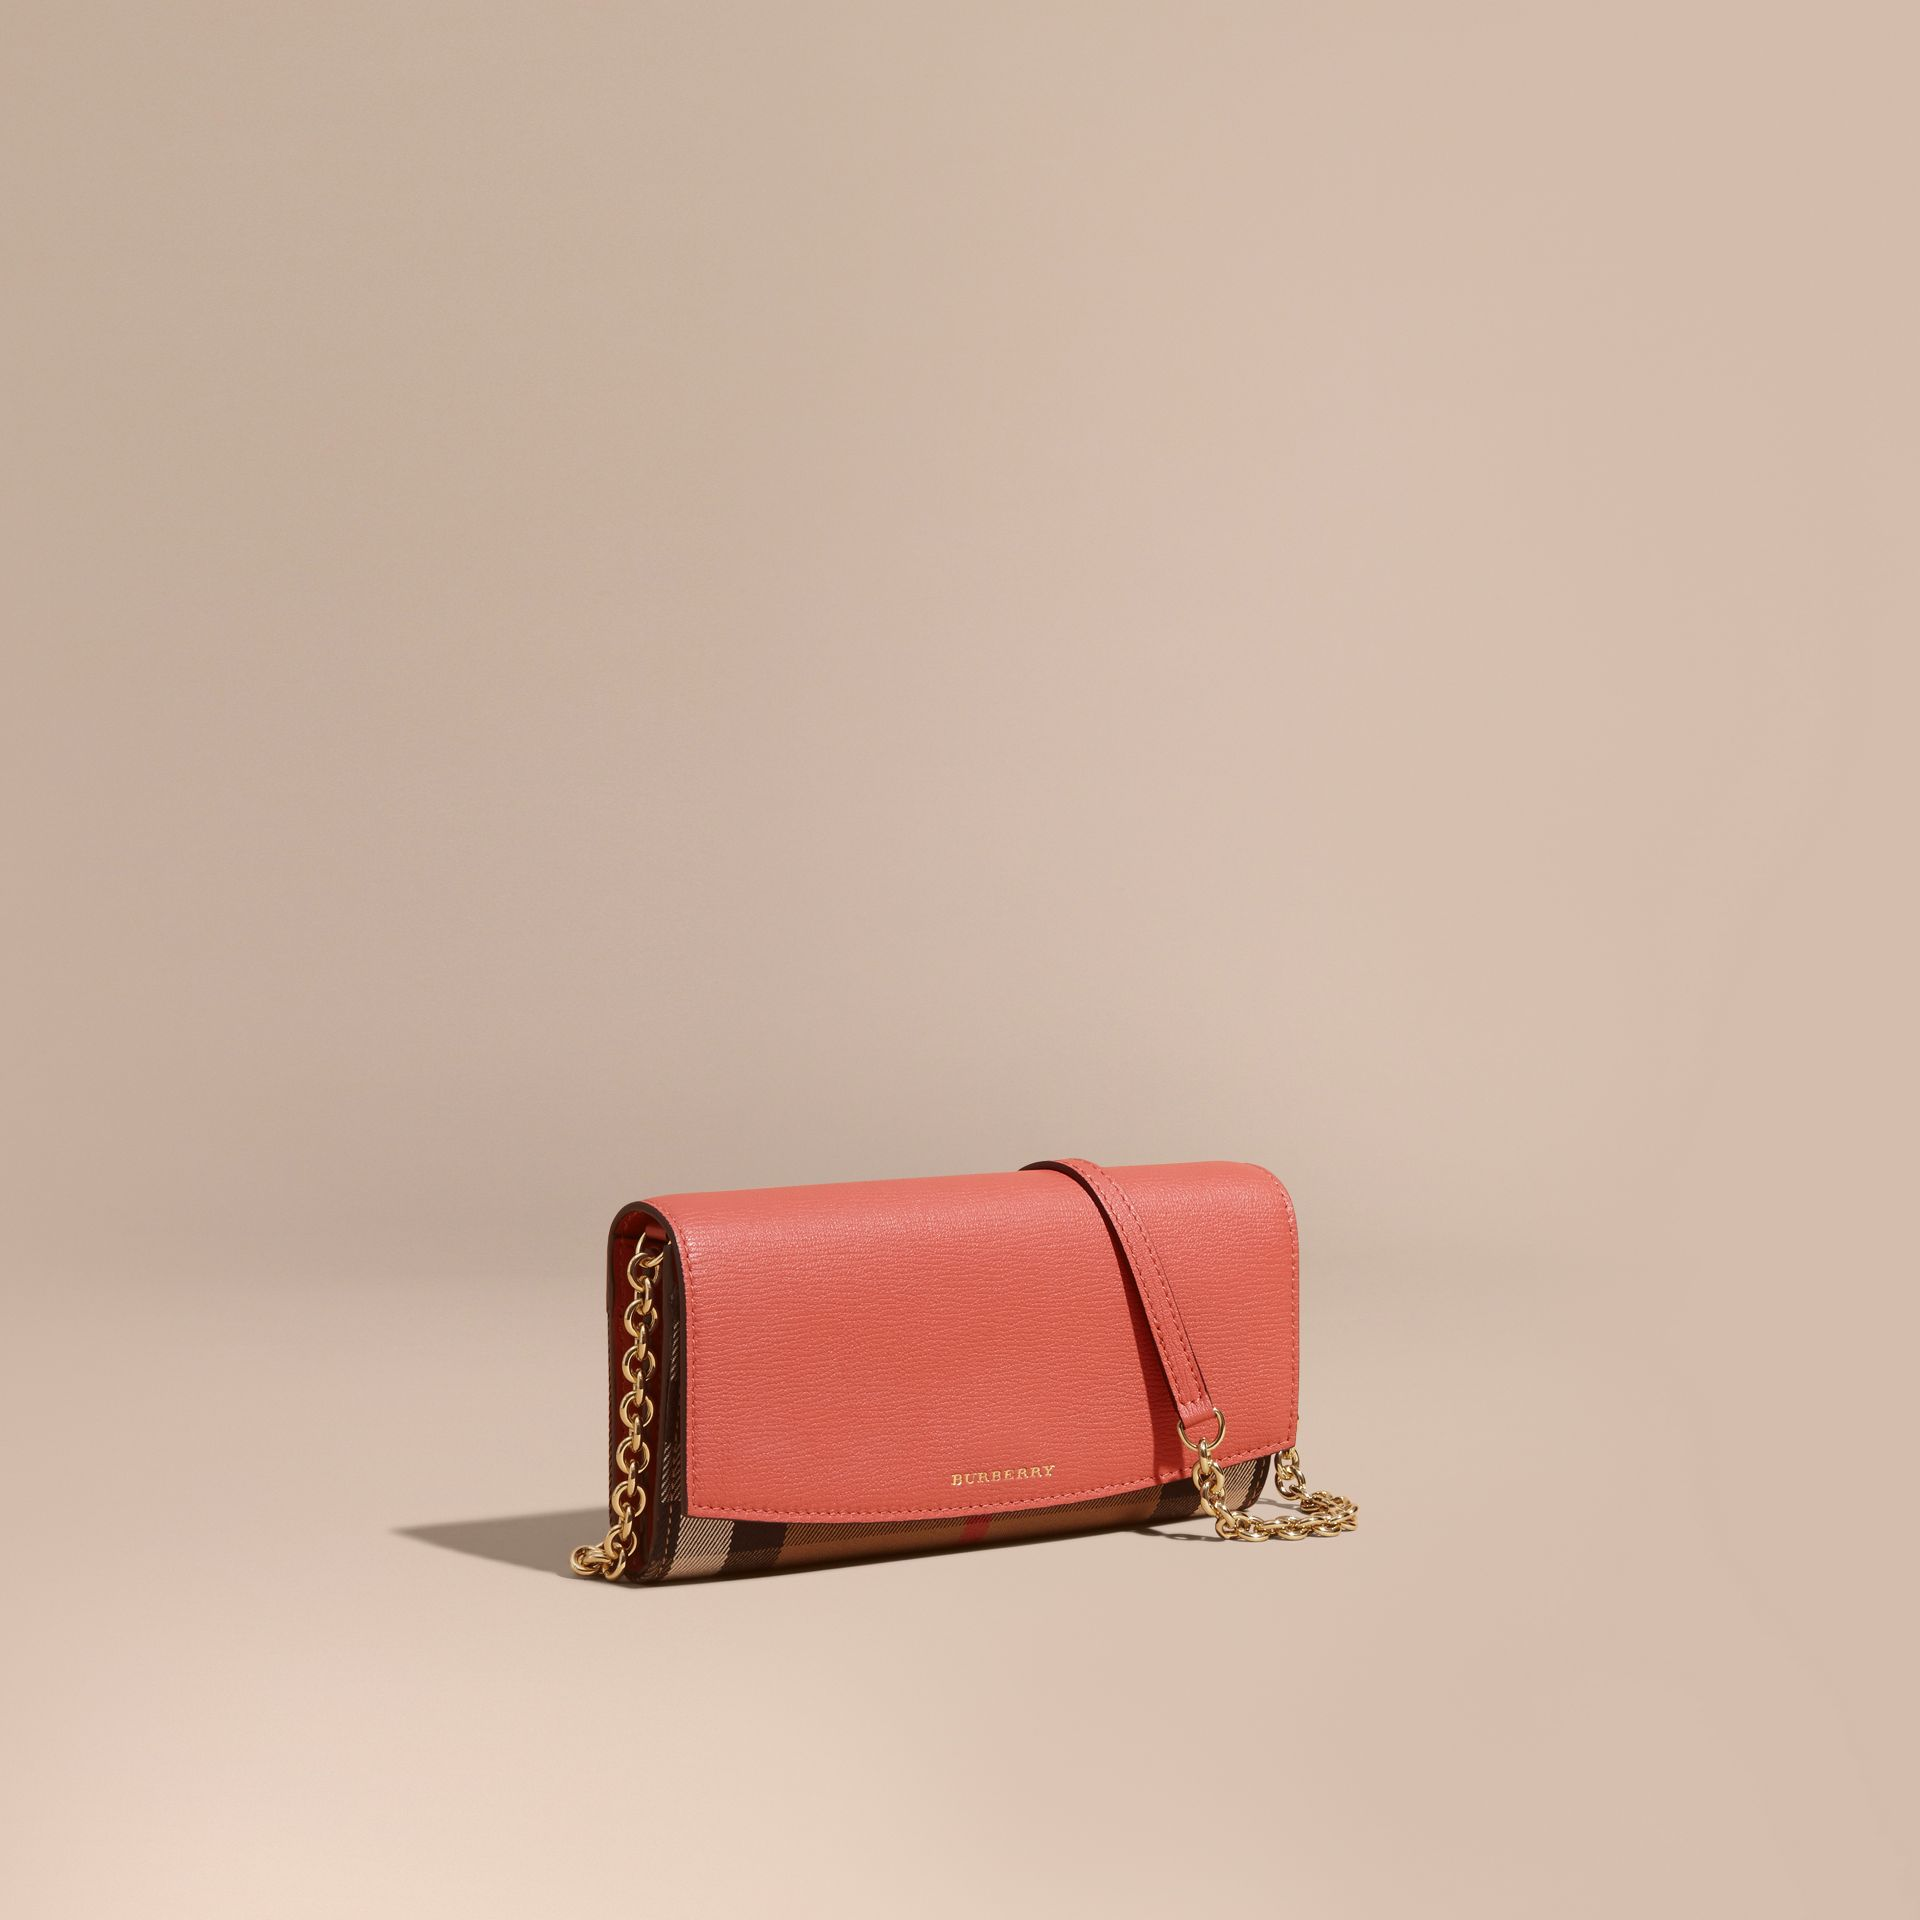 House Check and Leather Wallet with Chain in Cinnamon Red - Women | Burberry - gallery image 0